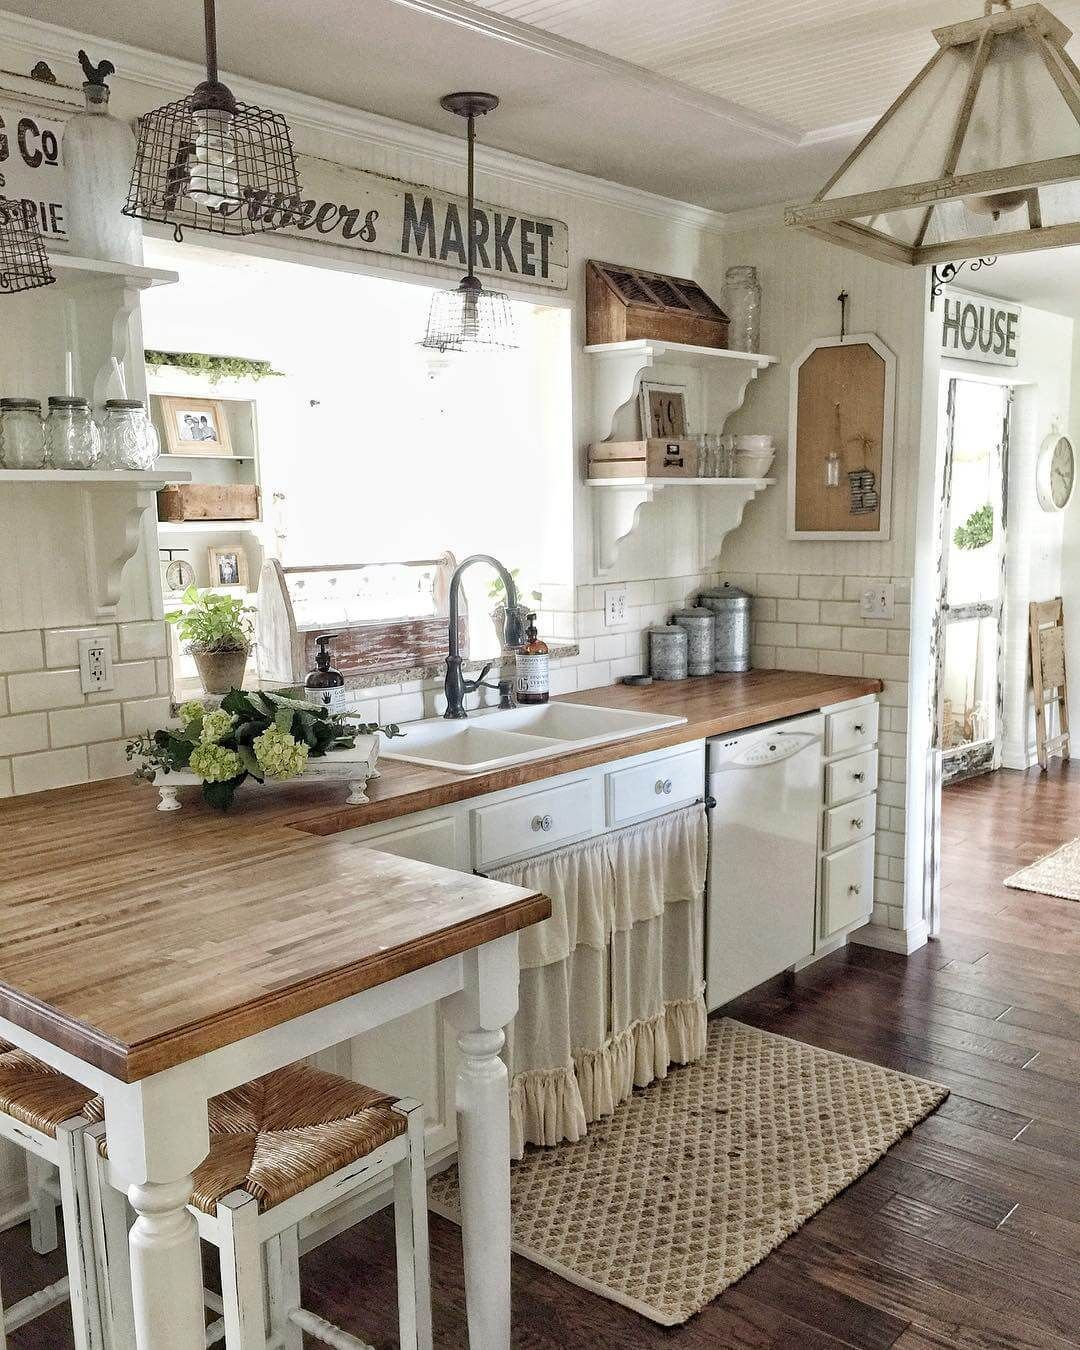 85 Charming Rustic Bedroom Ideas And Designs 4 In 2020: 21+ Rustic Farmhouse Interior Design Ideas For 2020